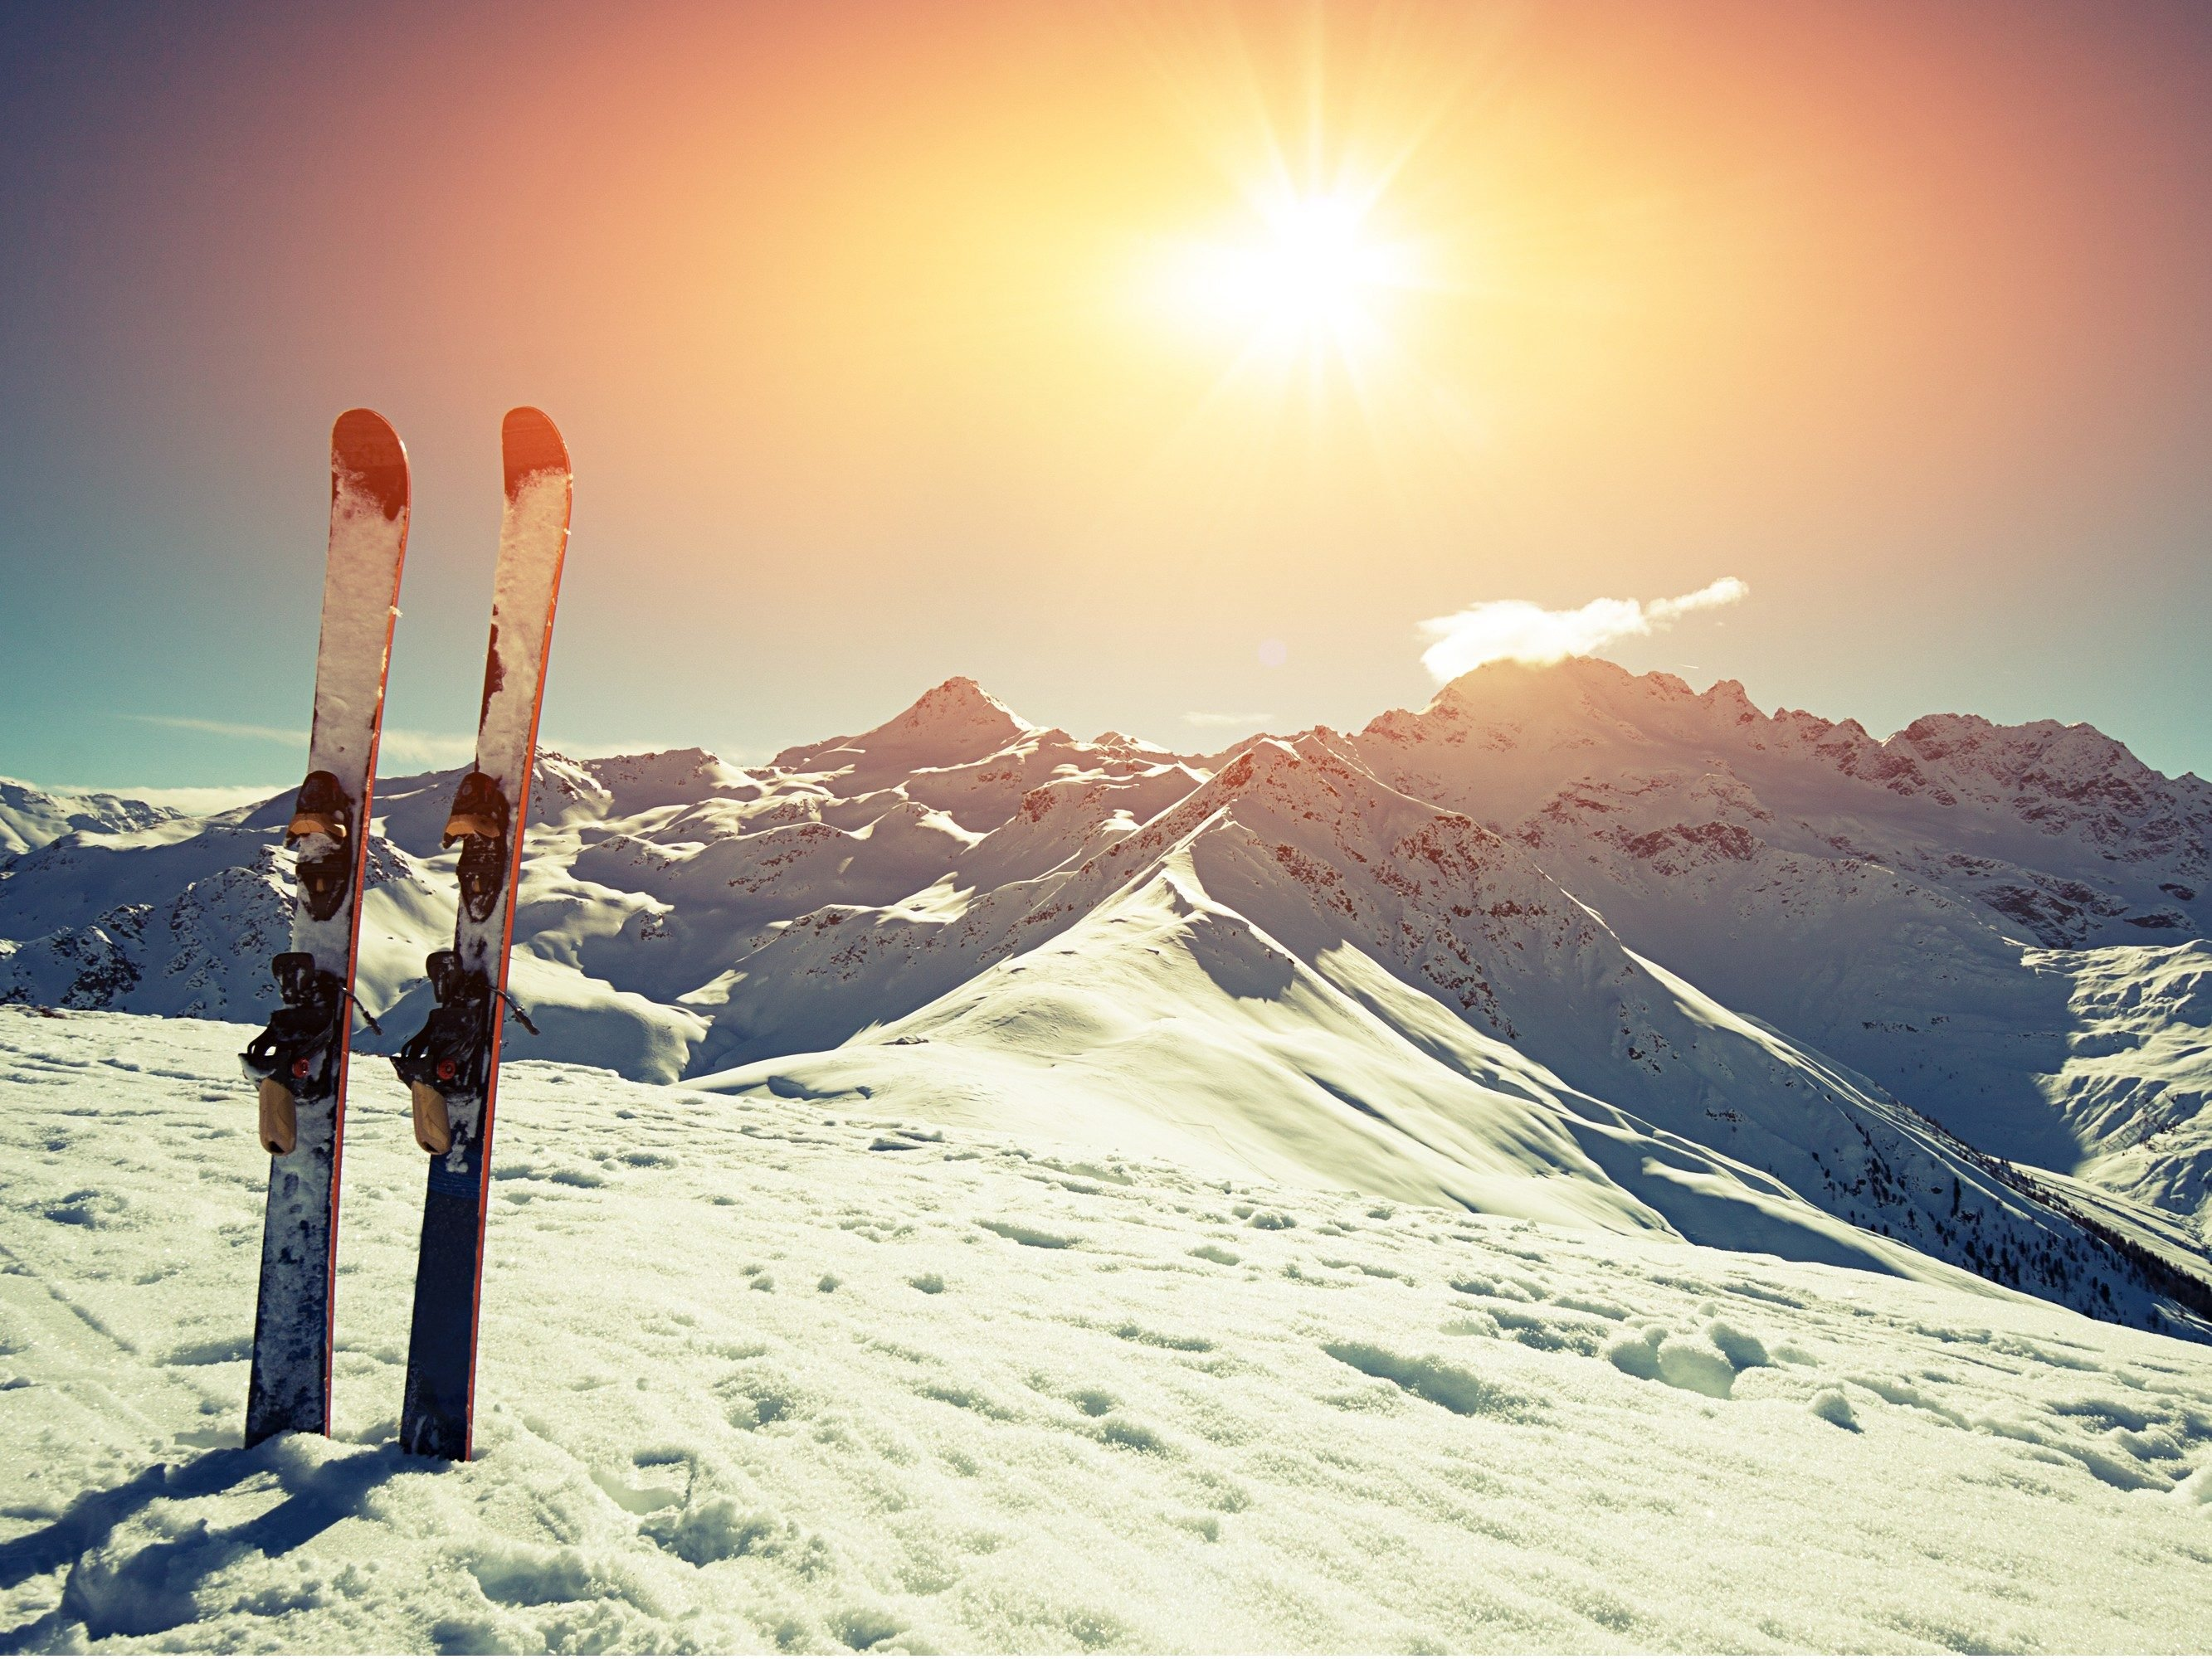 Winter Sports Equipment Is a Great Find